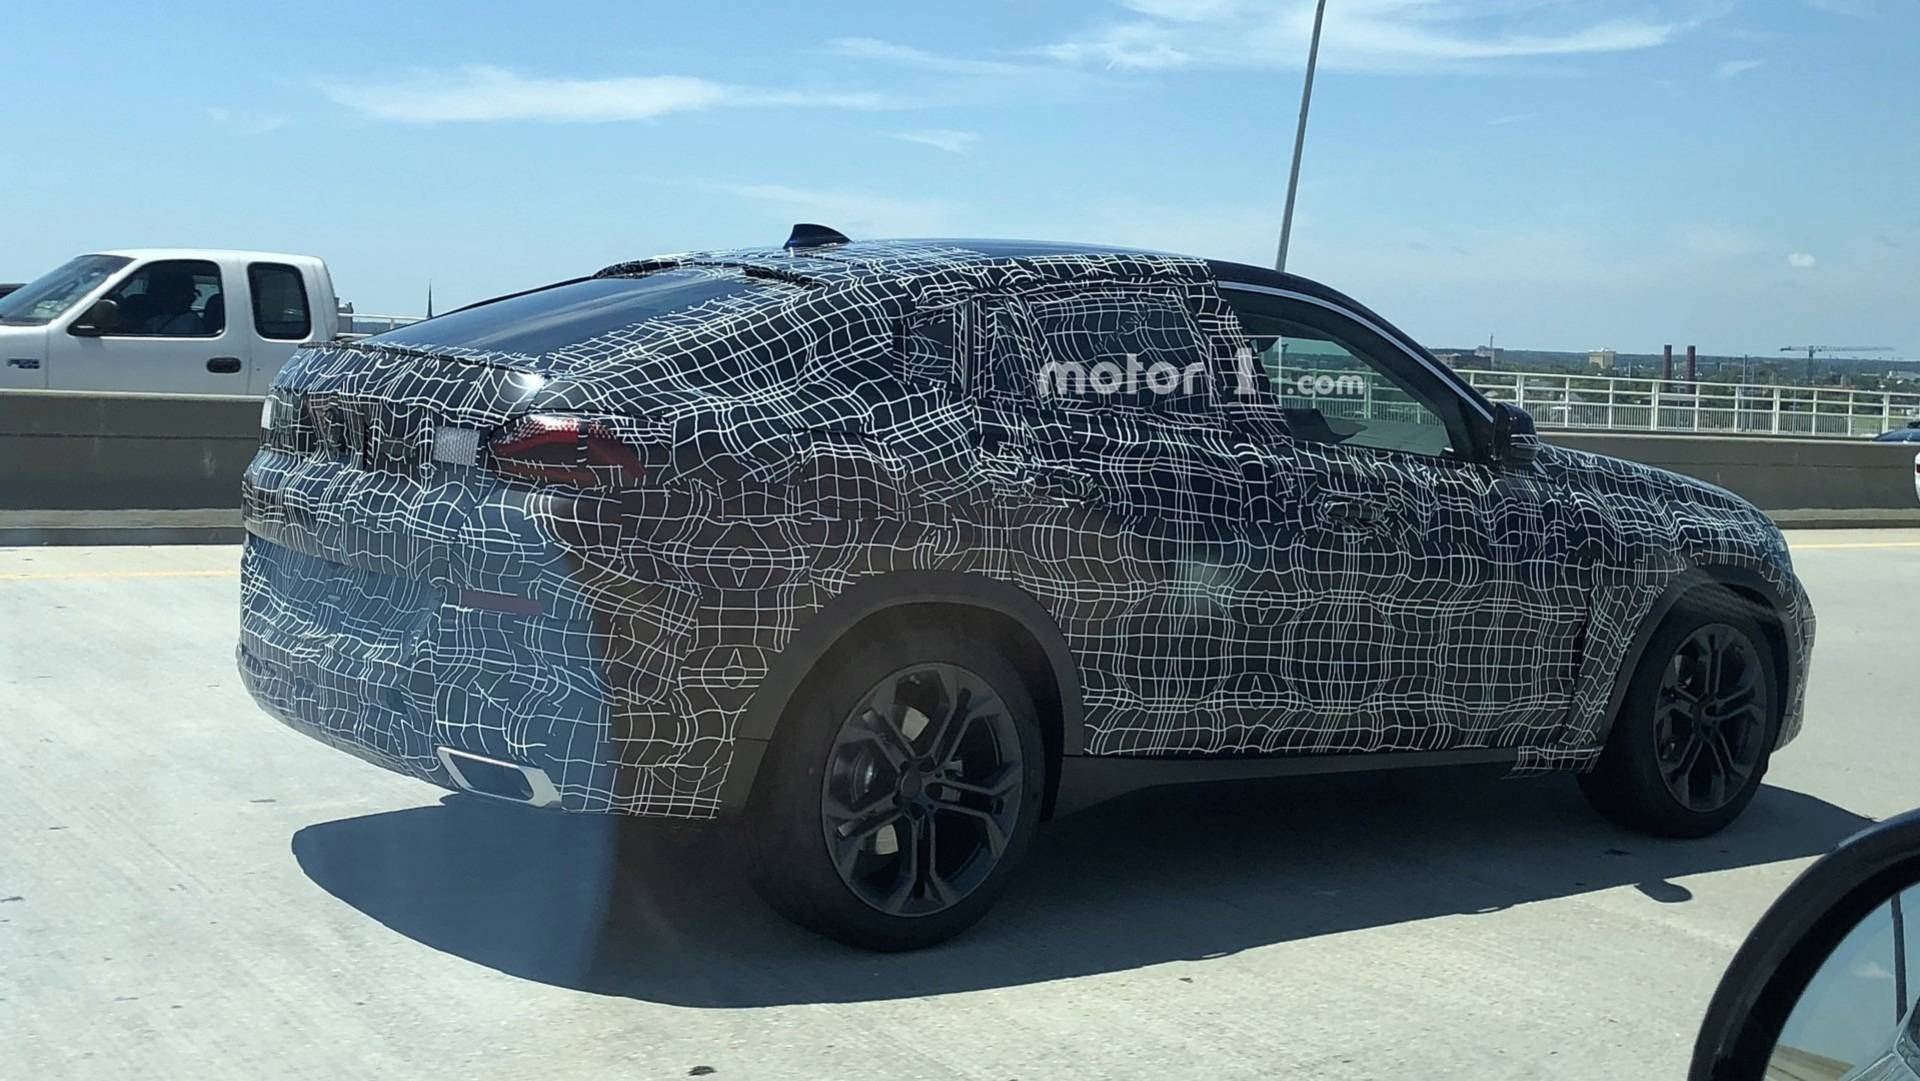 2020 Bmw X6 Spotted Up Close By Motor1 Com Reader